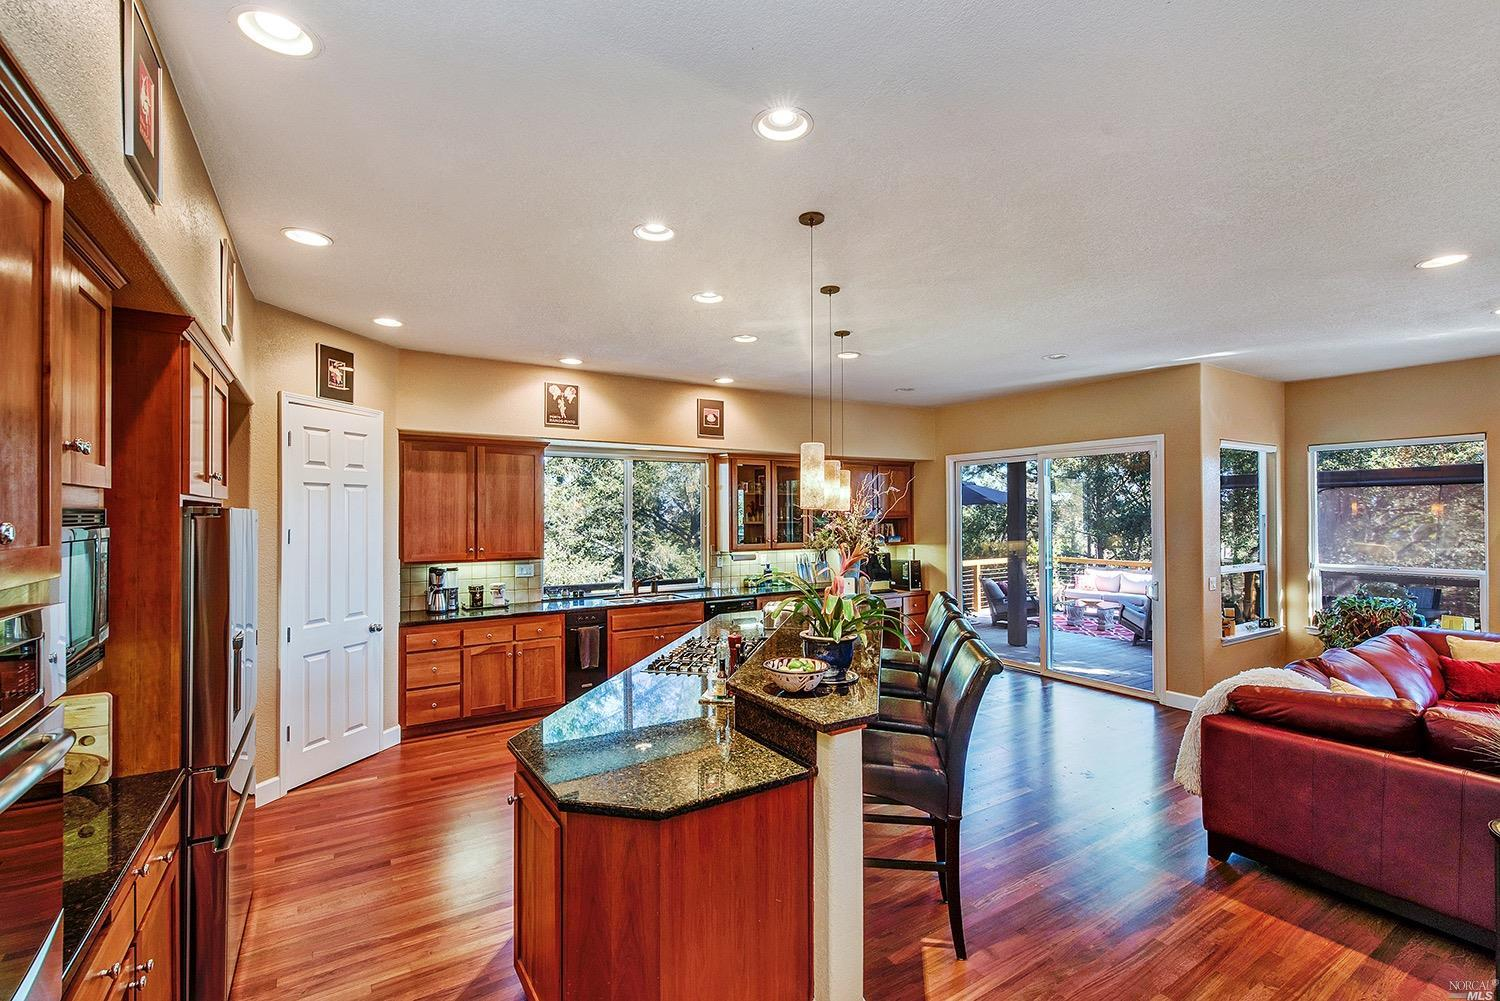 3888 Sage Hill Place Santa Rosa, California 95404, 4 Bedrooms Bedrooms, ,3 BathroomsBathrooms,Residential,For Sale,3888 Sage Hill,21908522